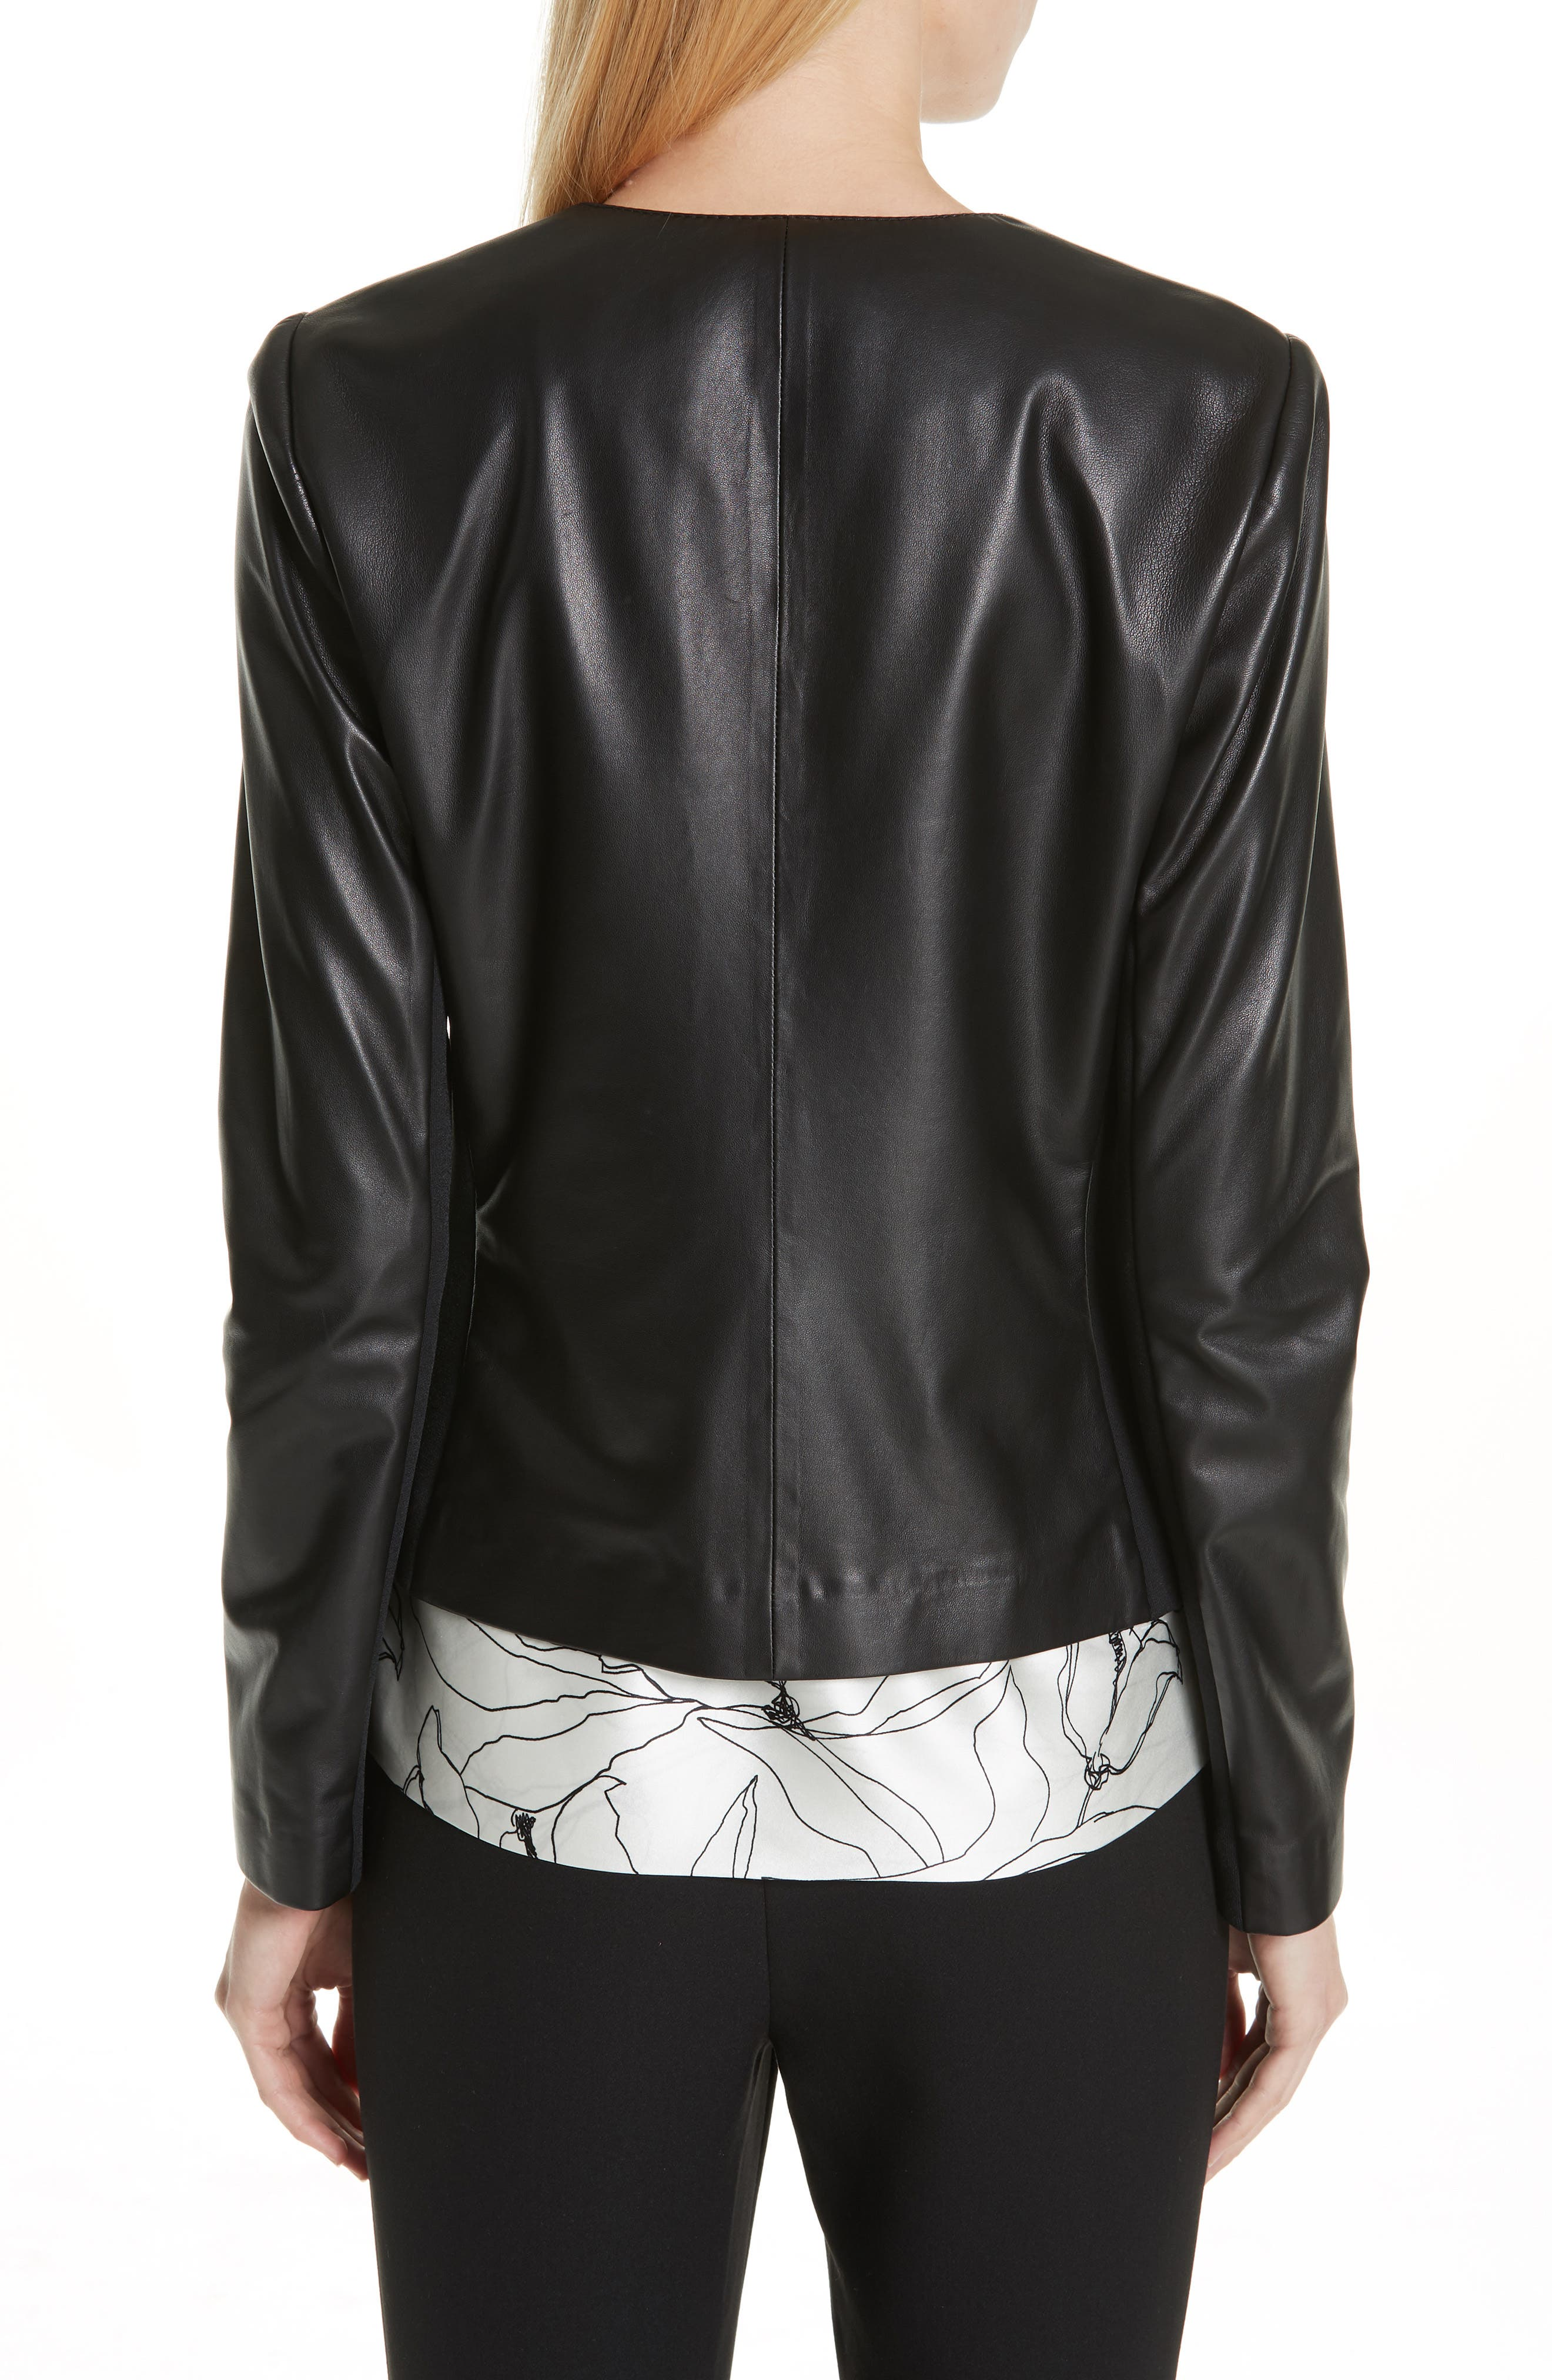 ST. JOHN COLLECTION, Luxe Nappa Leather Jacket, Alternate thumbnail 2, color, CAVIAR